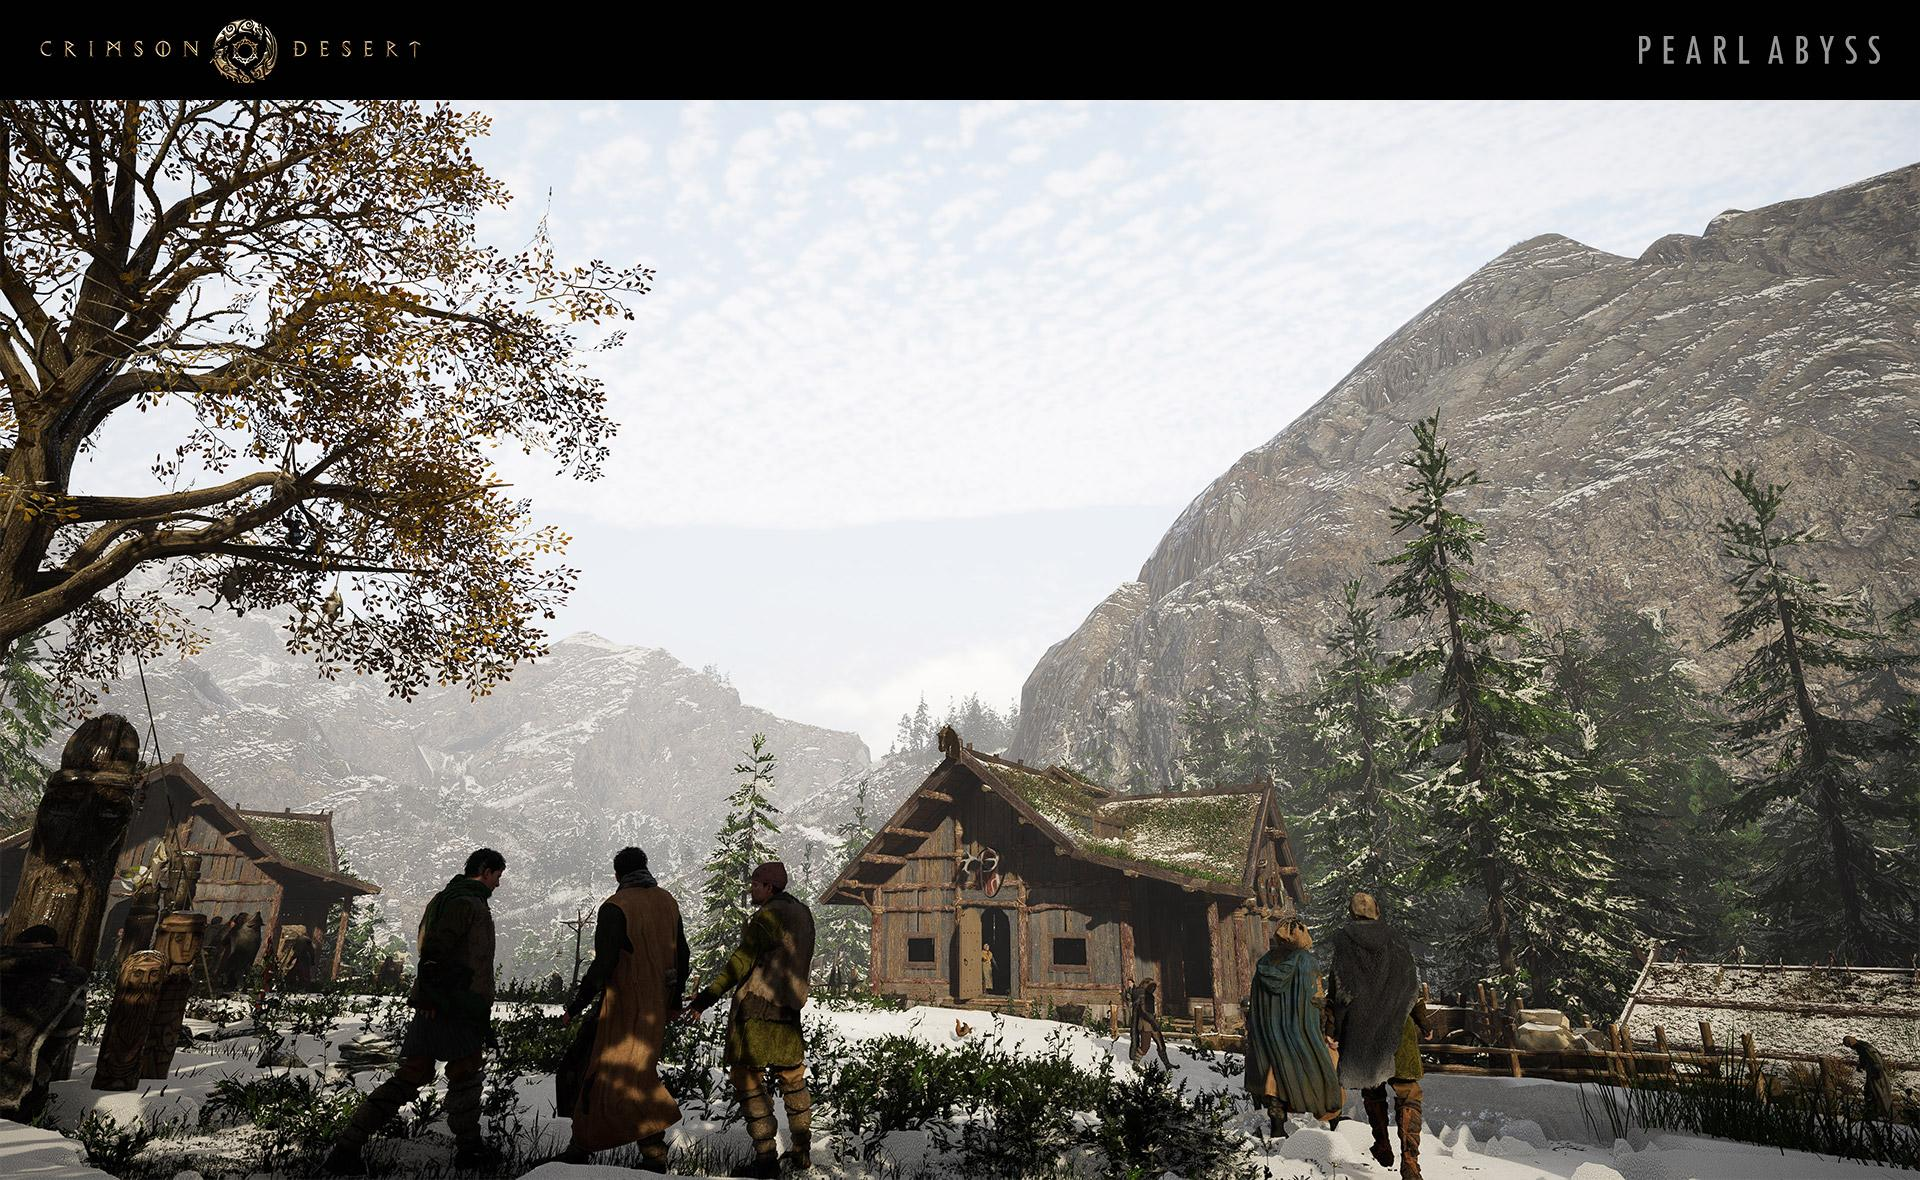 Crimson Desert is being developed by Pearl Abyss, the creators of the Black Desert Online MMO